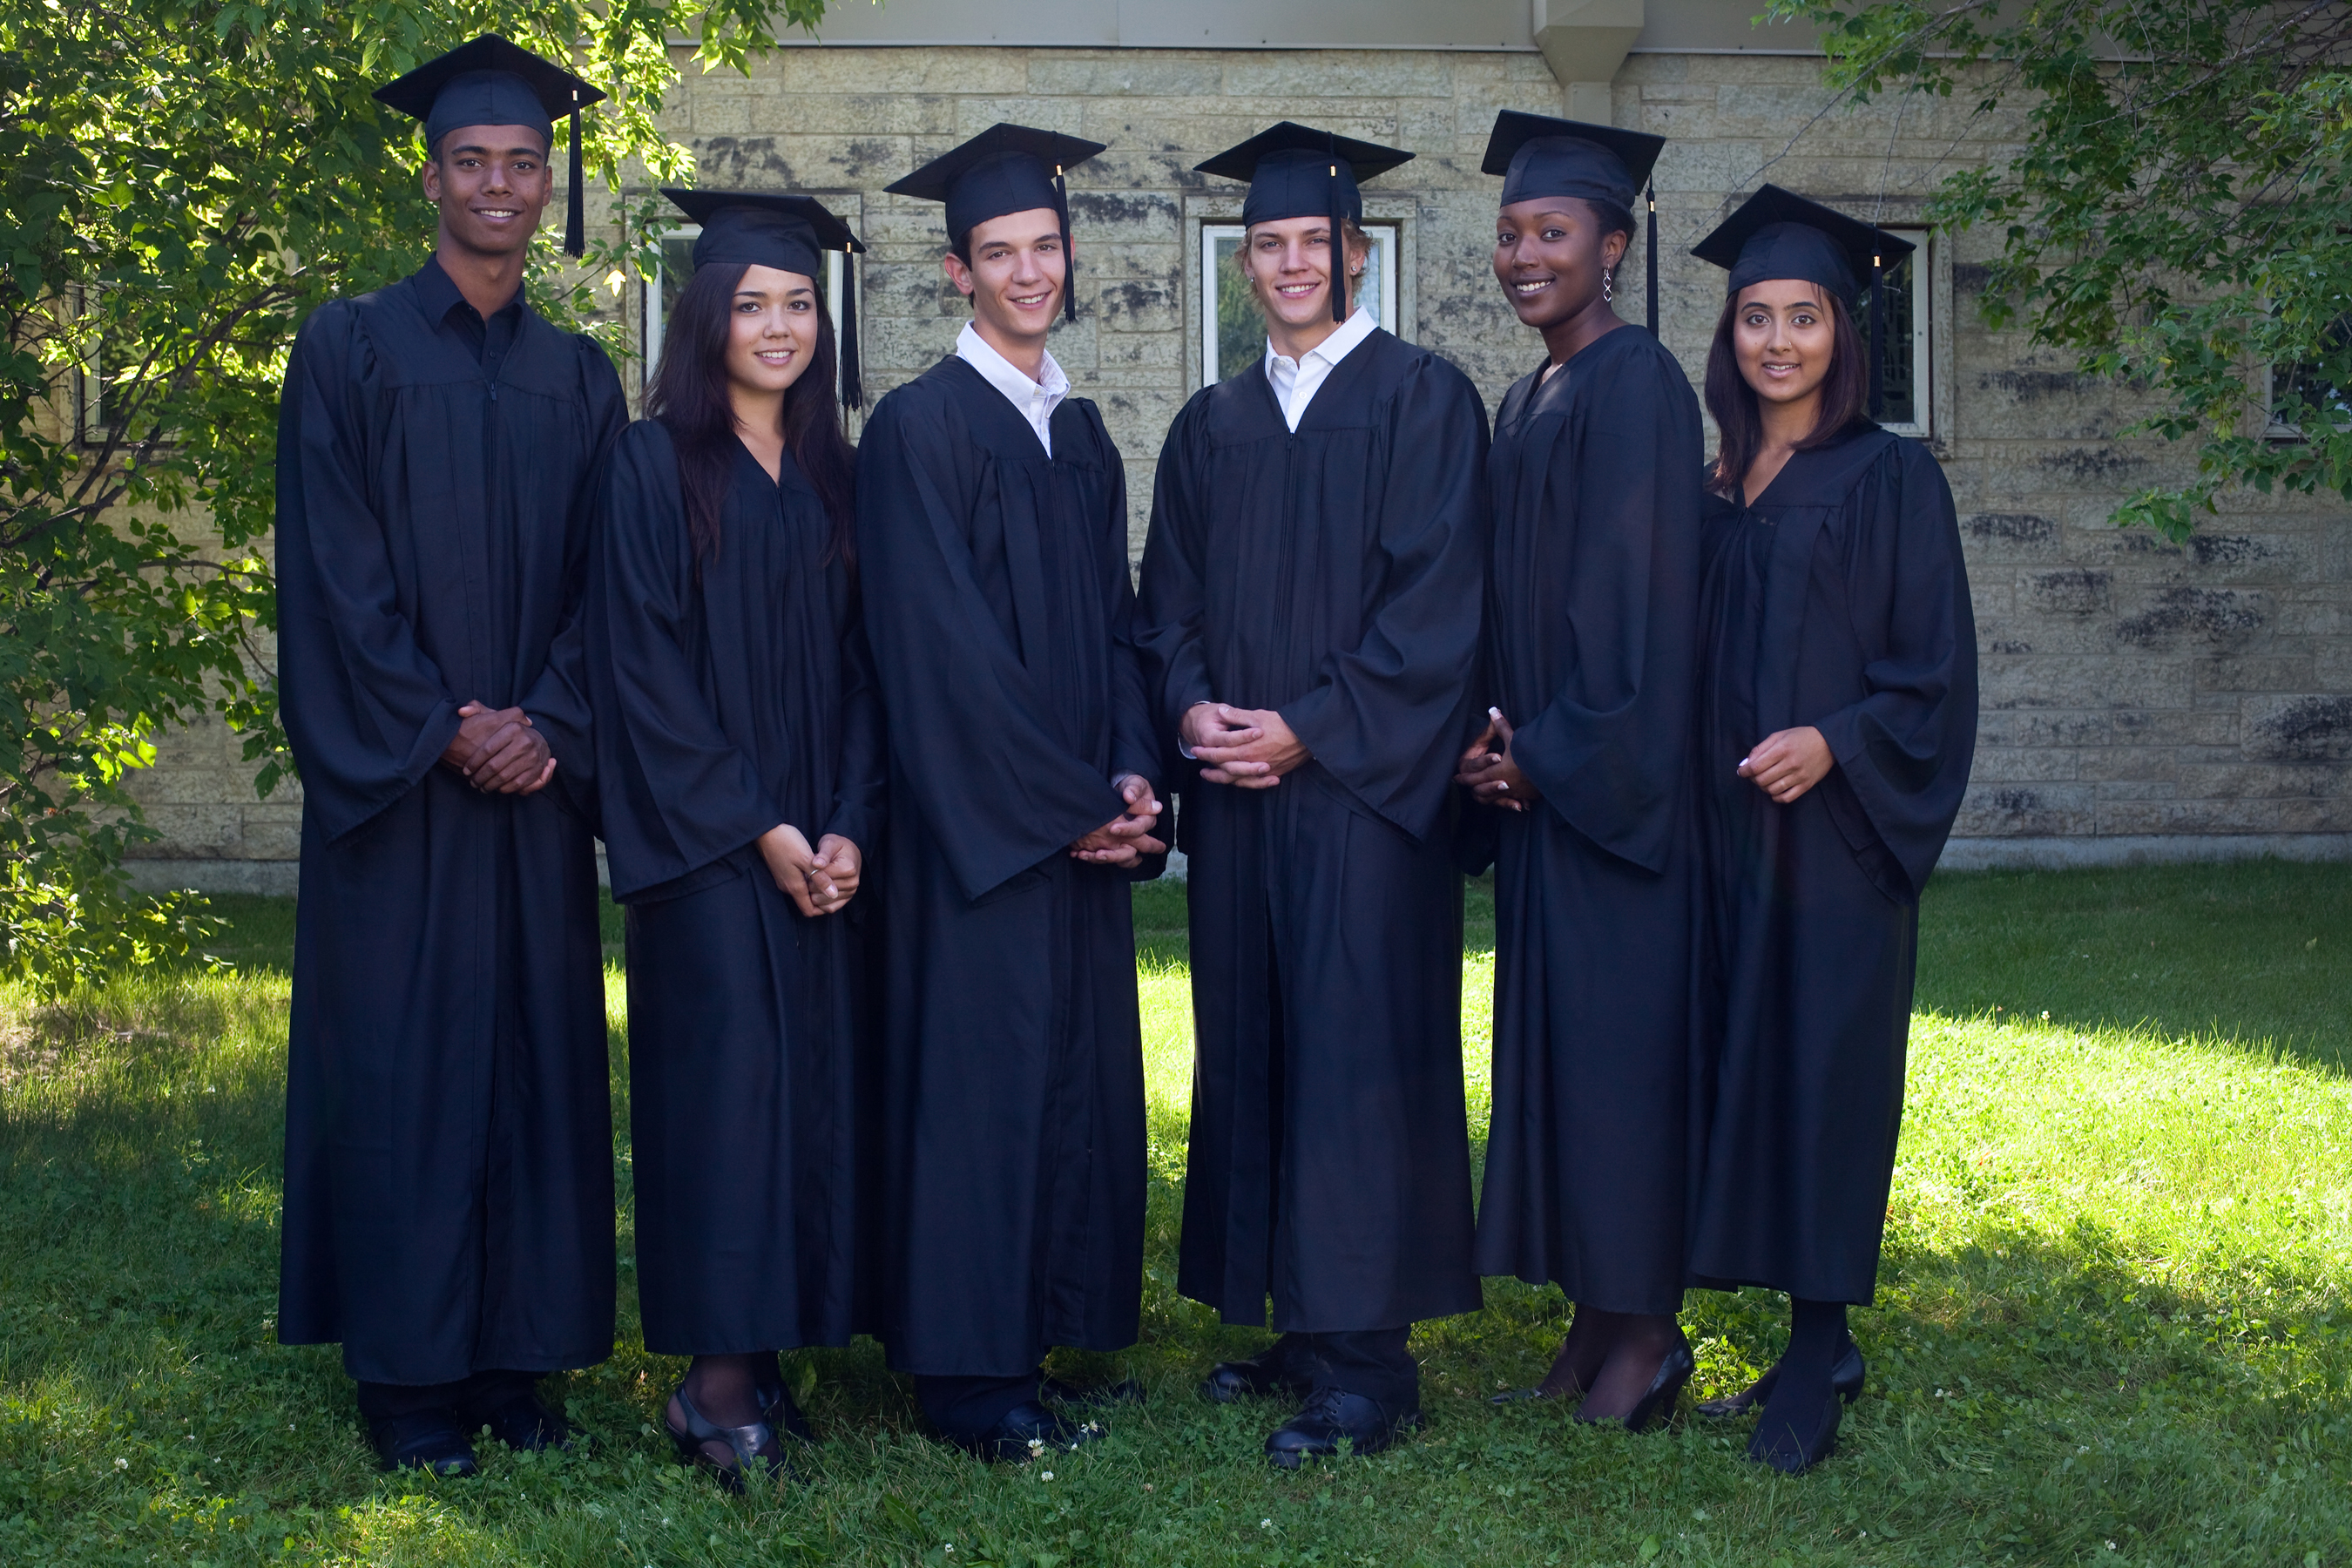 How To Order Cap And Gown From Balfour - Sqqps.com